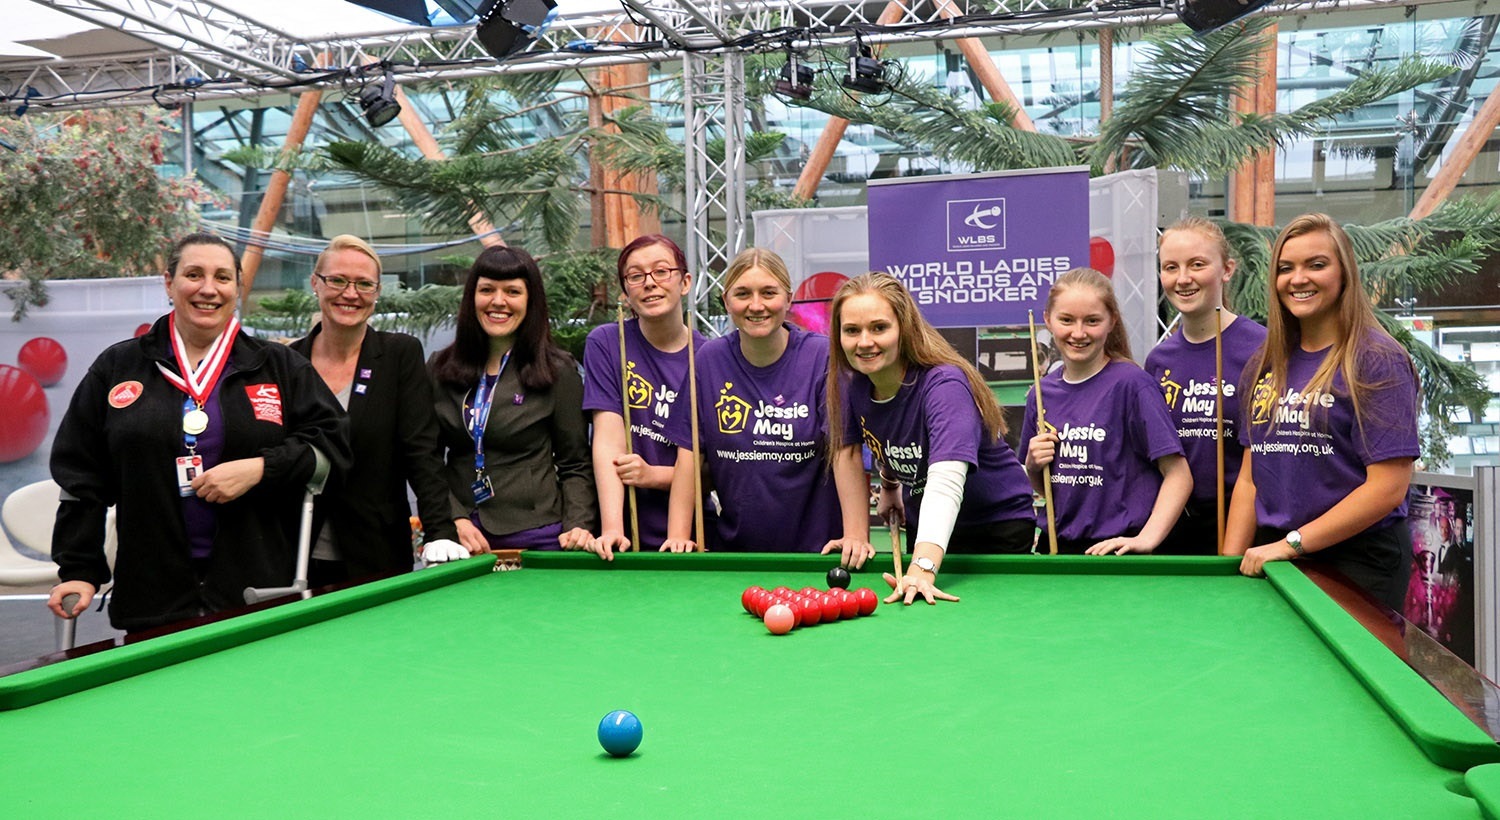 Women's snooker to be showcased in Sheffield